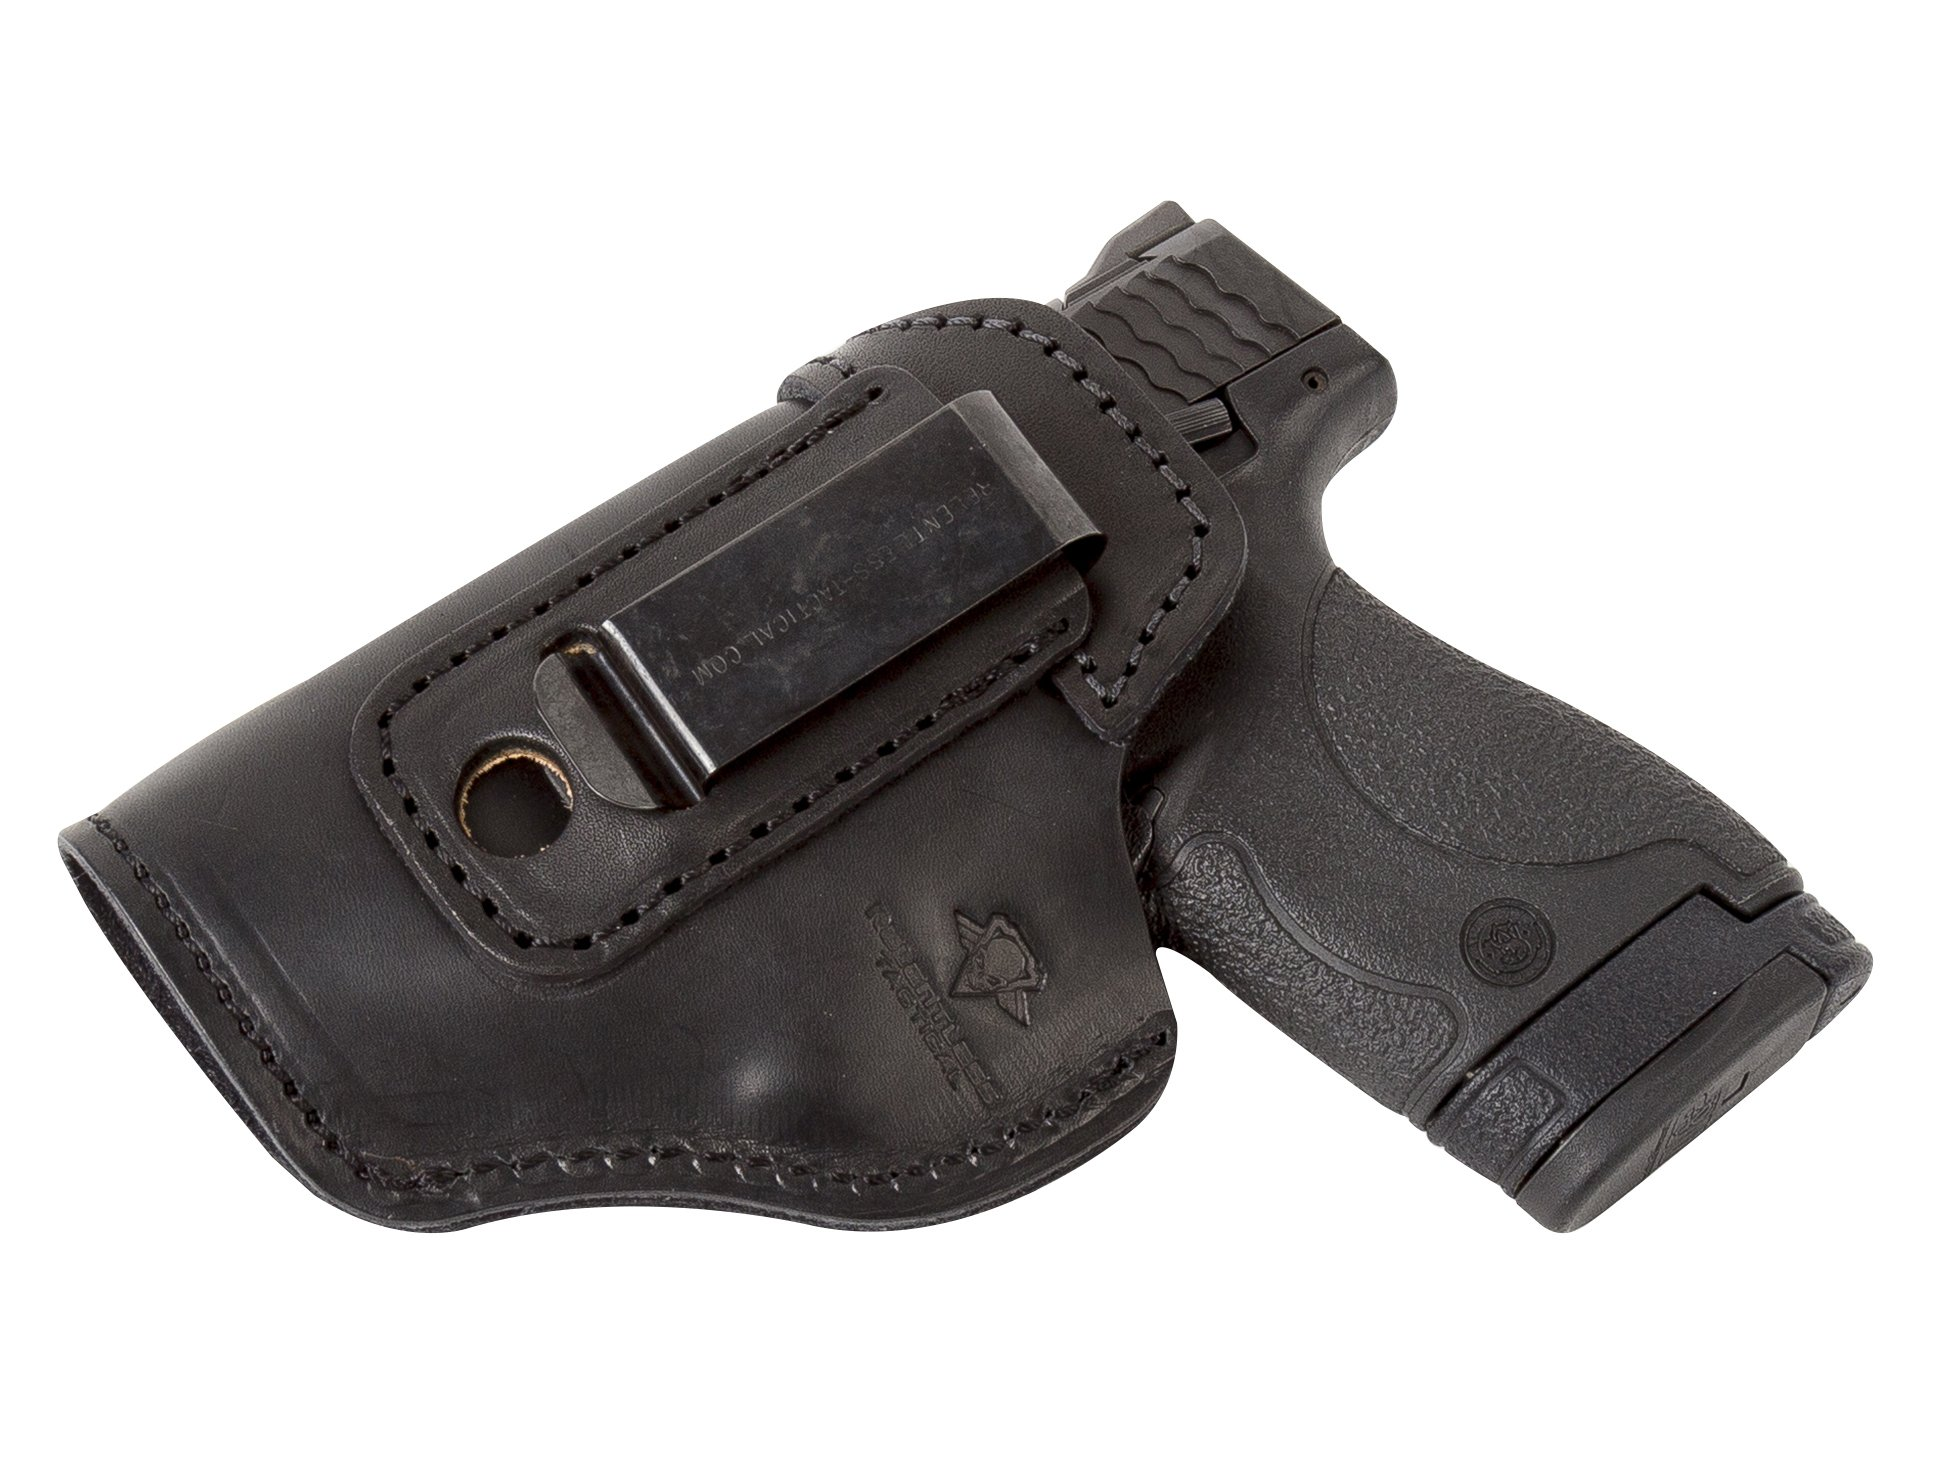 Defender Leather IWB Holster